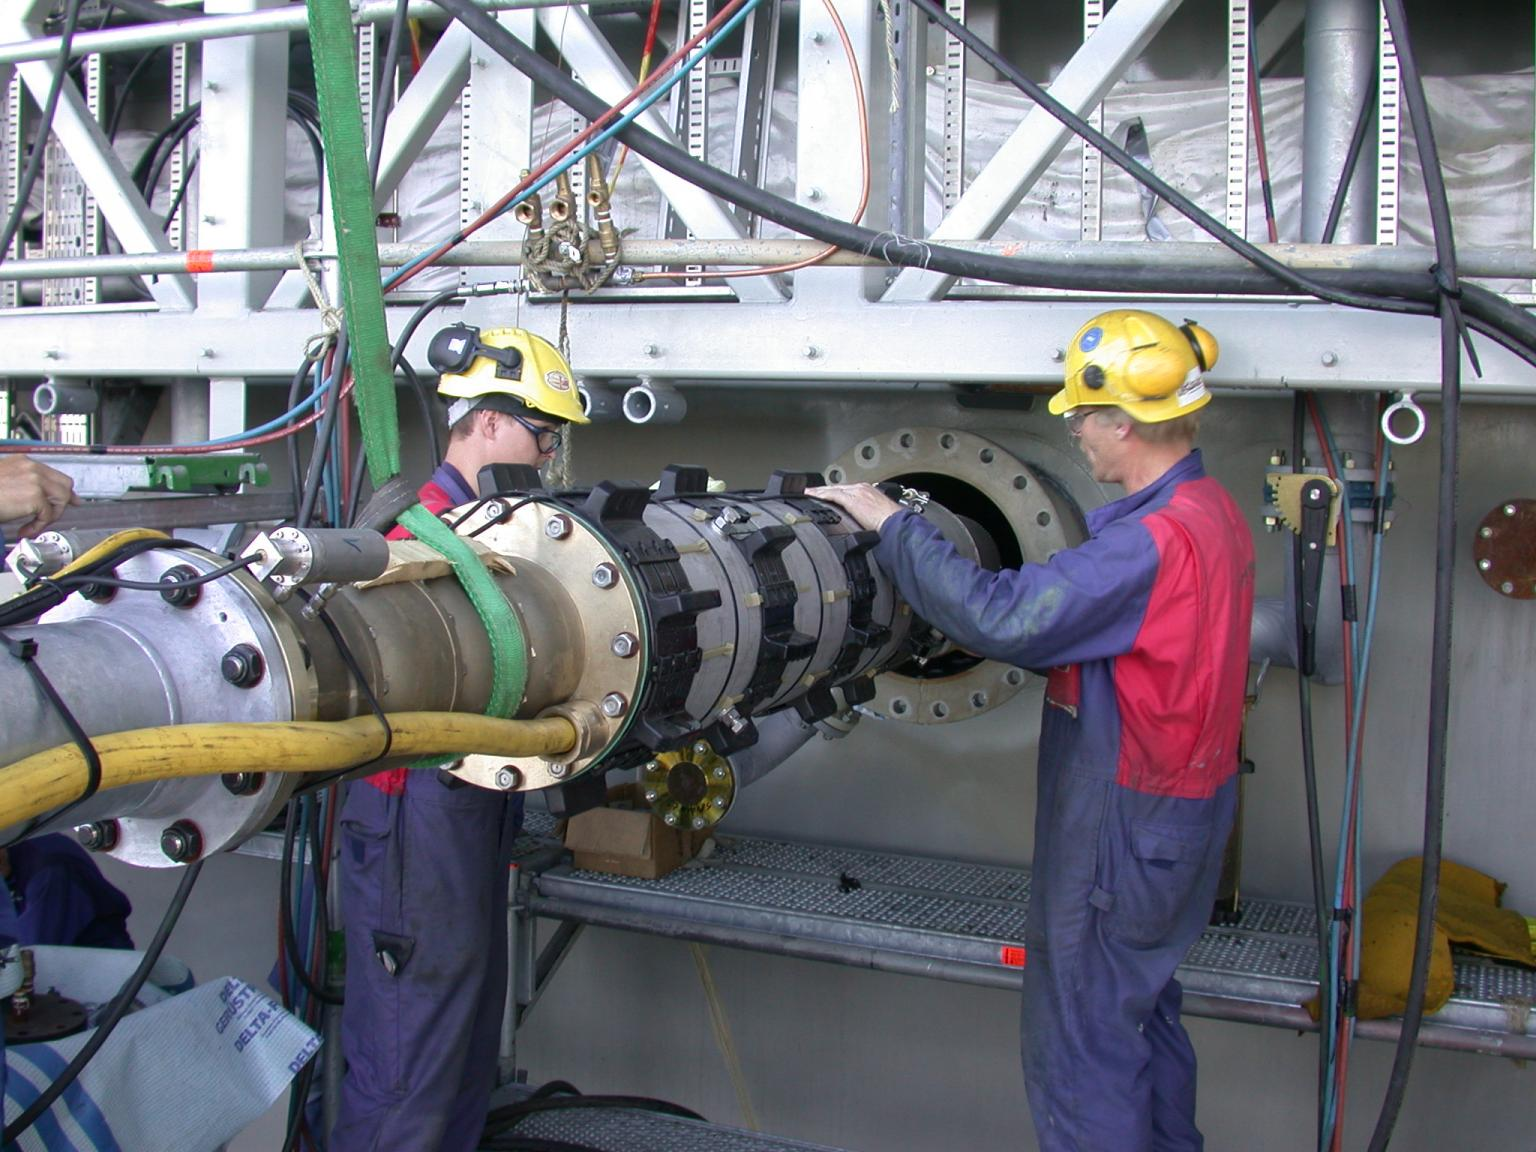 Mounting a submersible pump on the Holstein oil platform